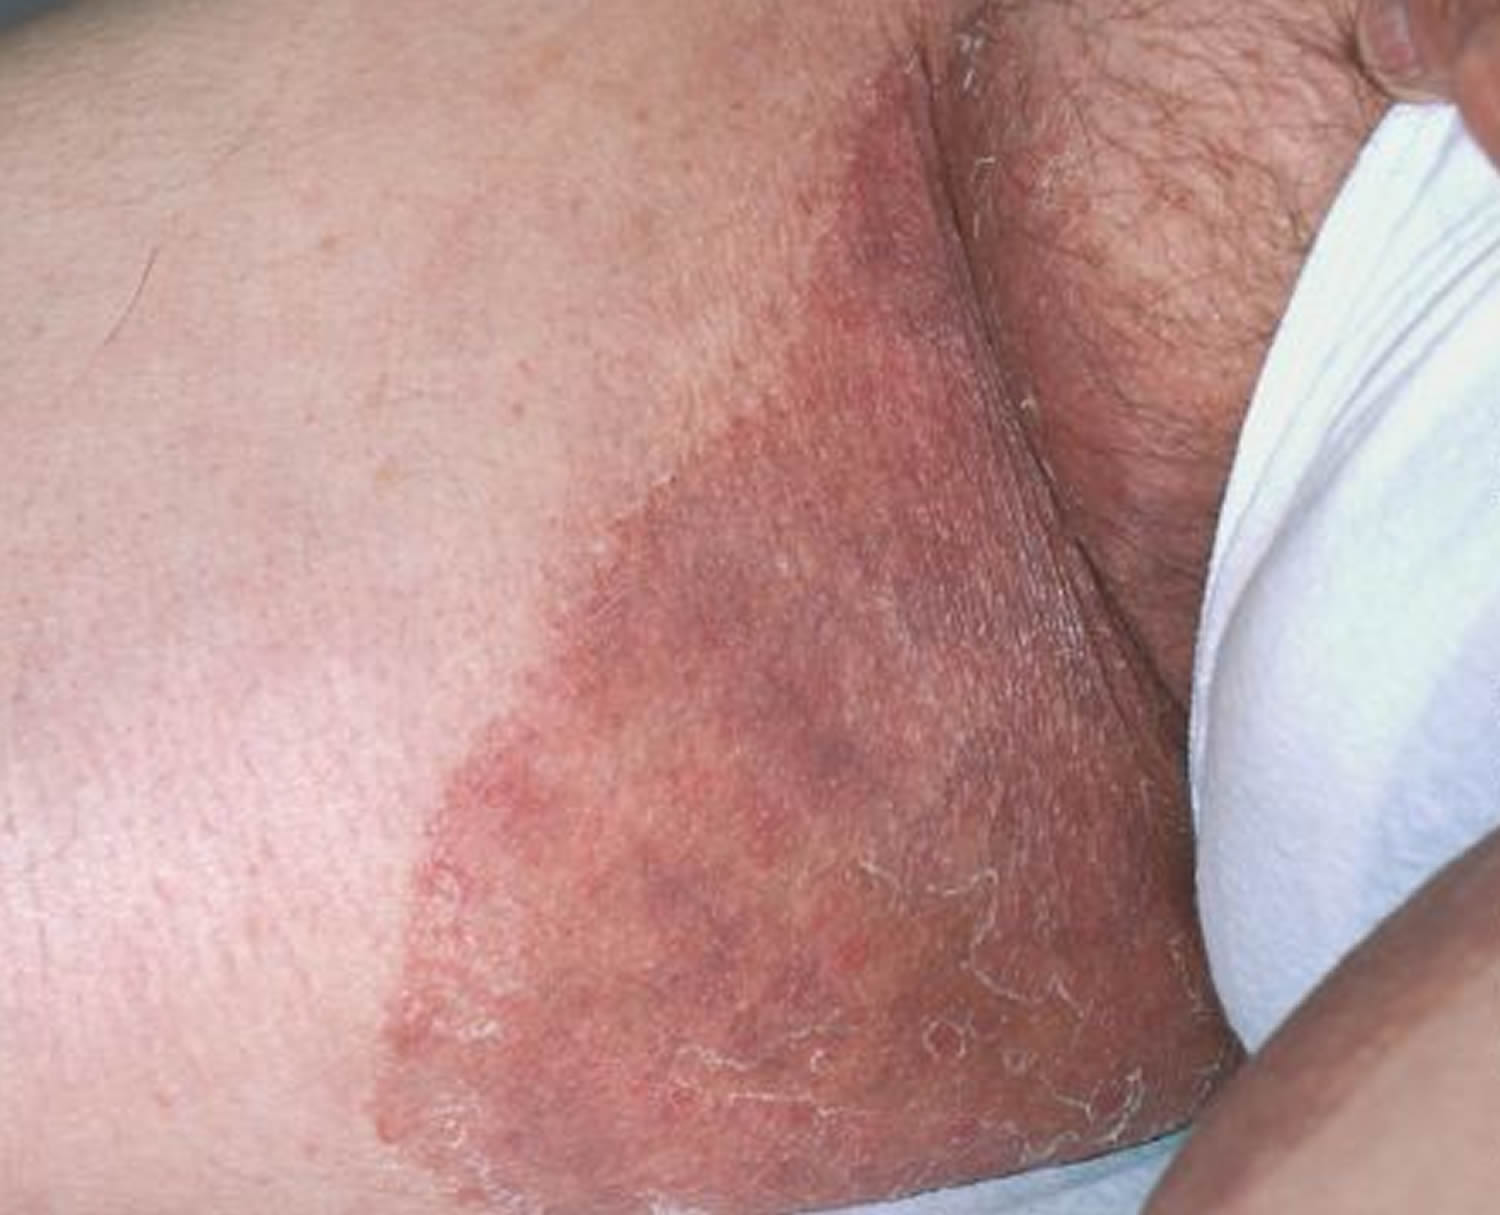 Ring rash around anus-2772